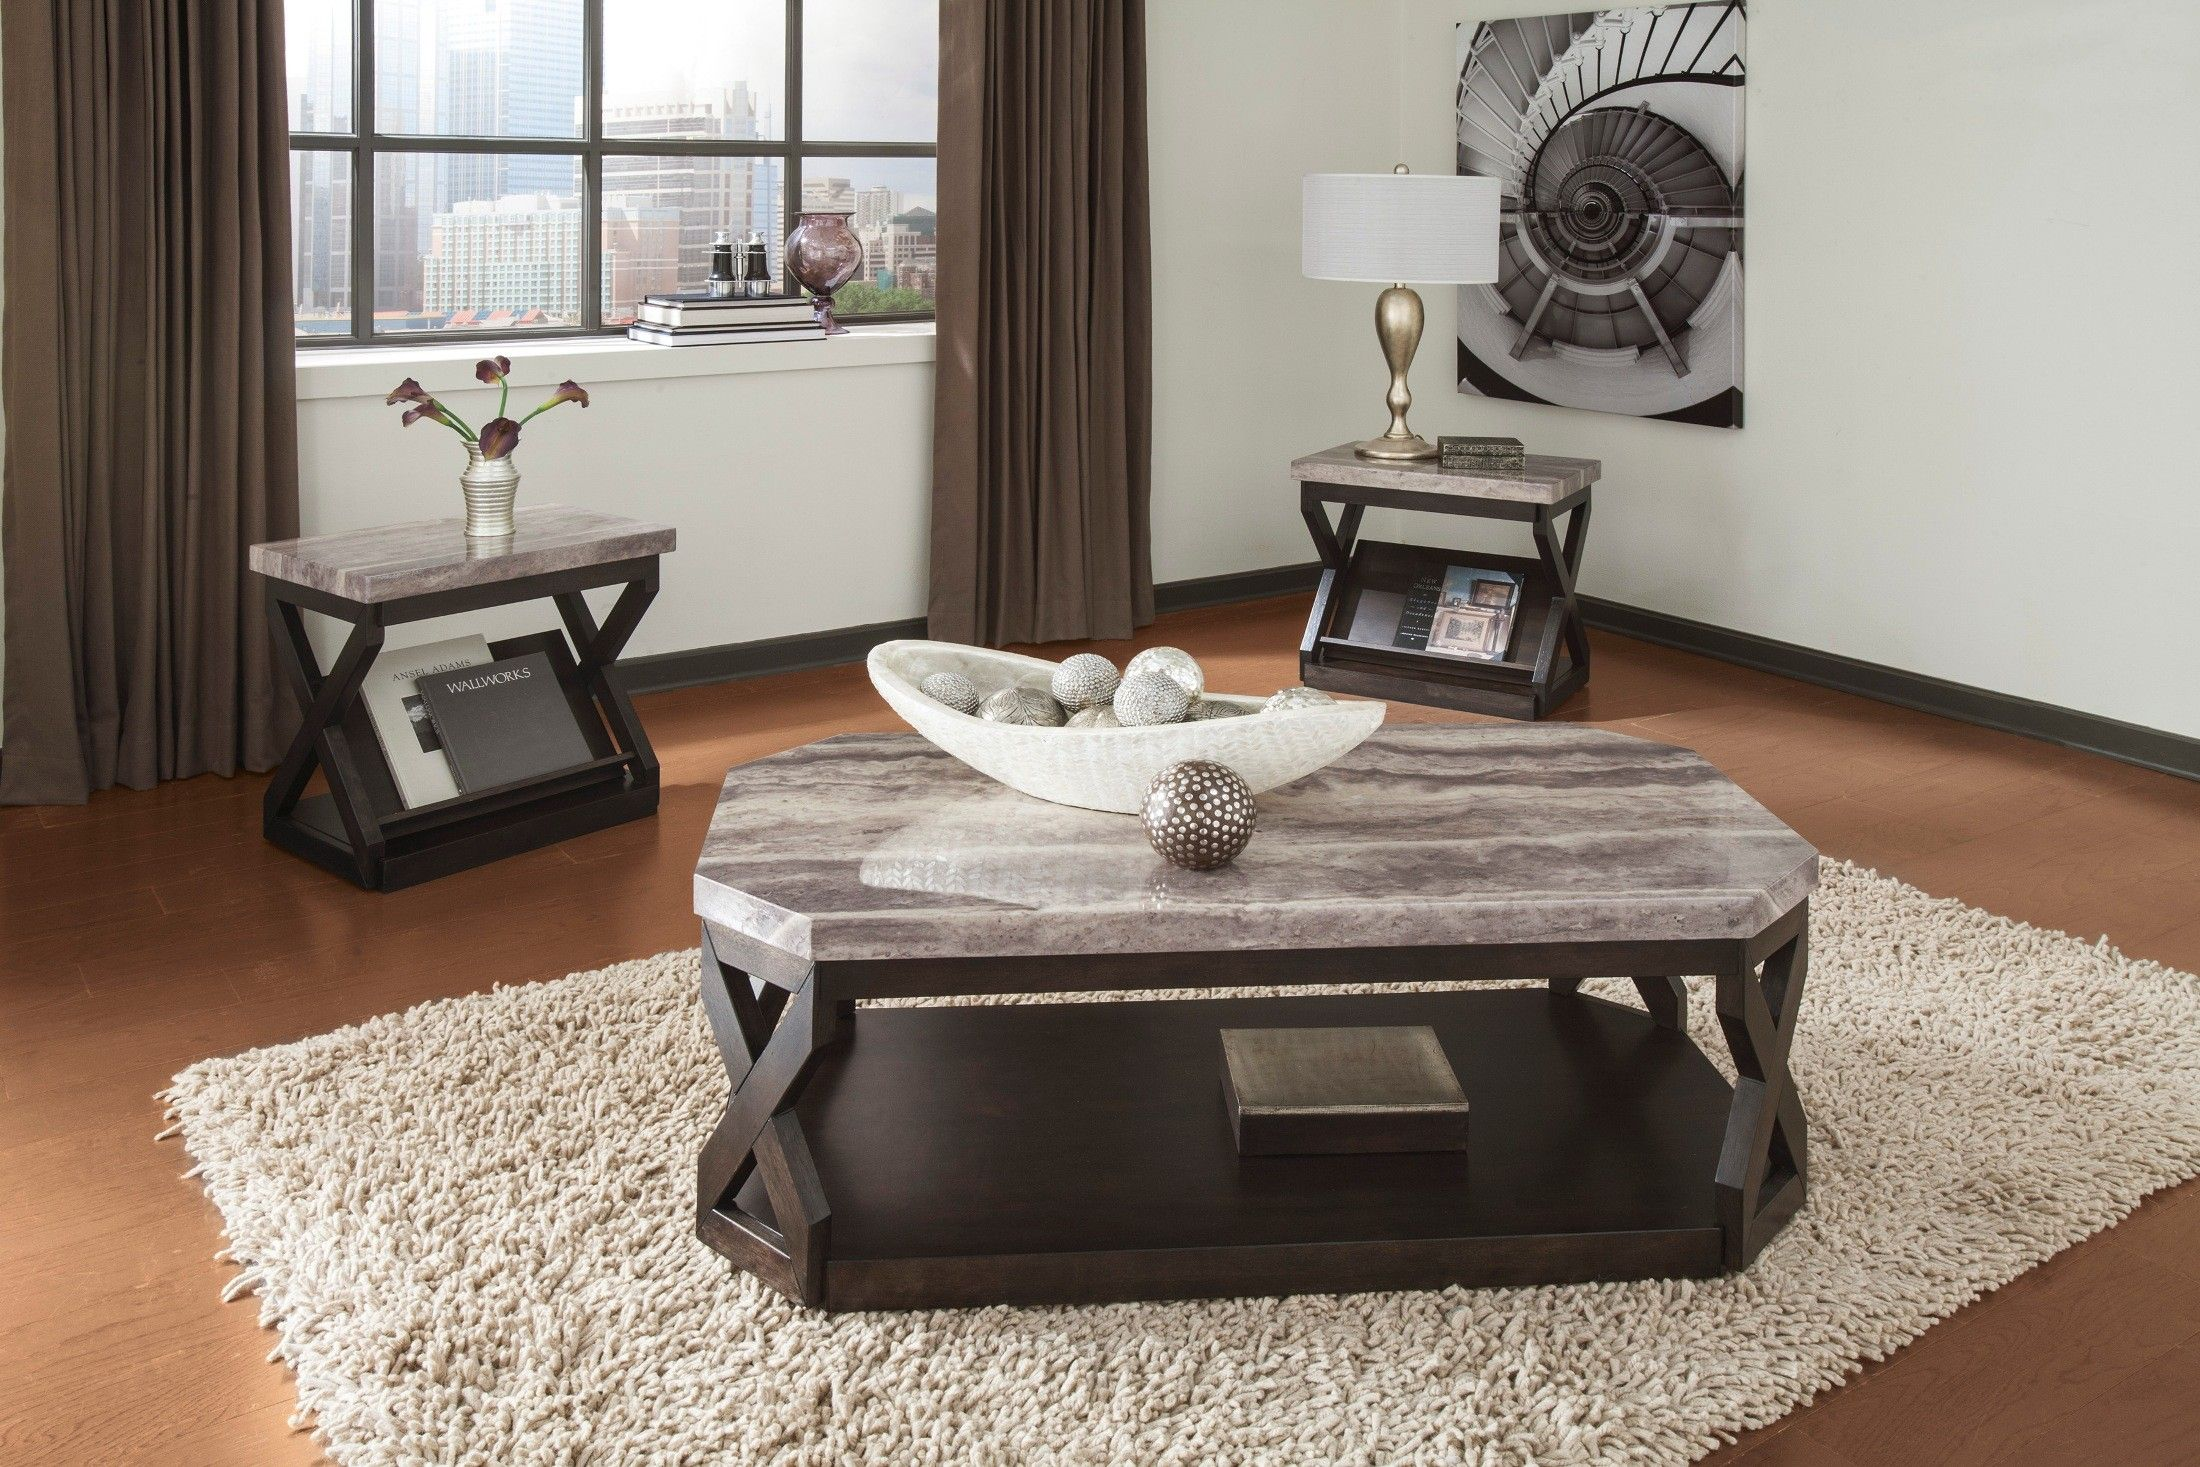 Radilyn 3 In 1 Occasional Table Set In 2020 Living Room Table Sets Stylish Coffee Table Living Room Coffee Table #three #piece #living #room #table #set